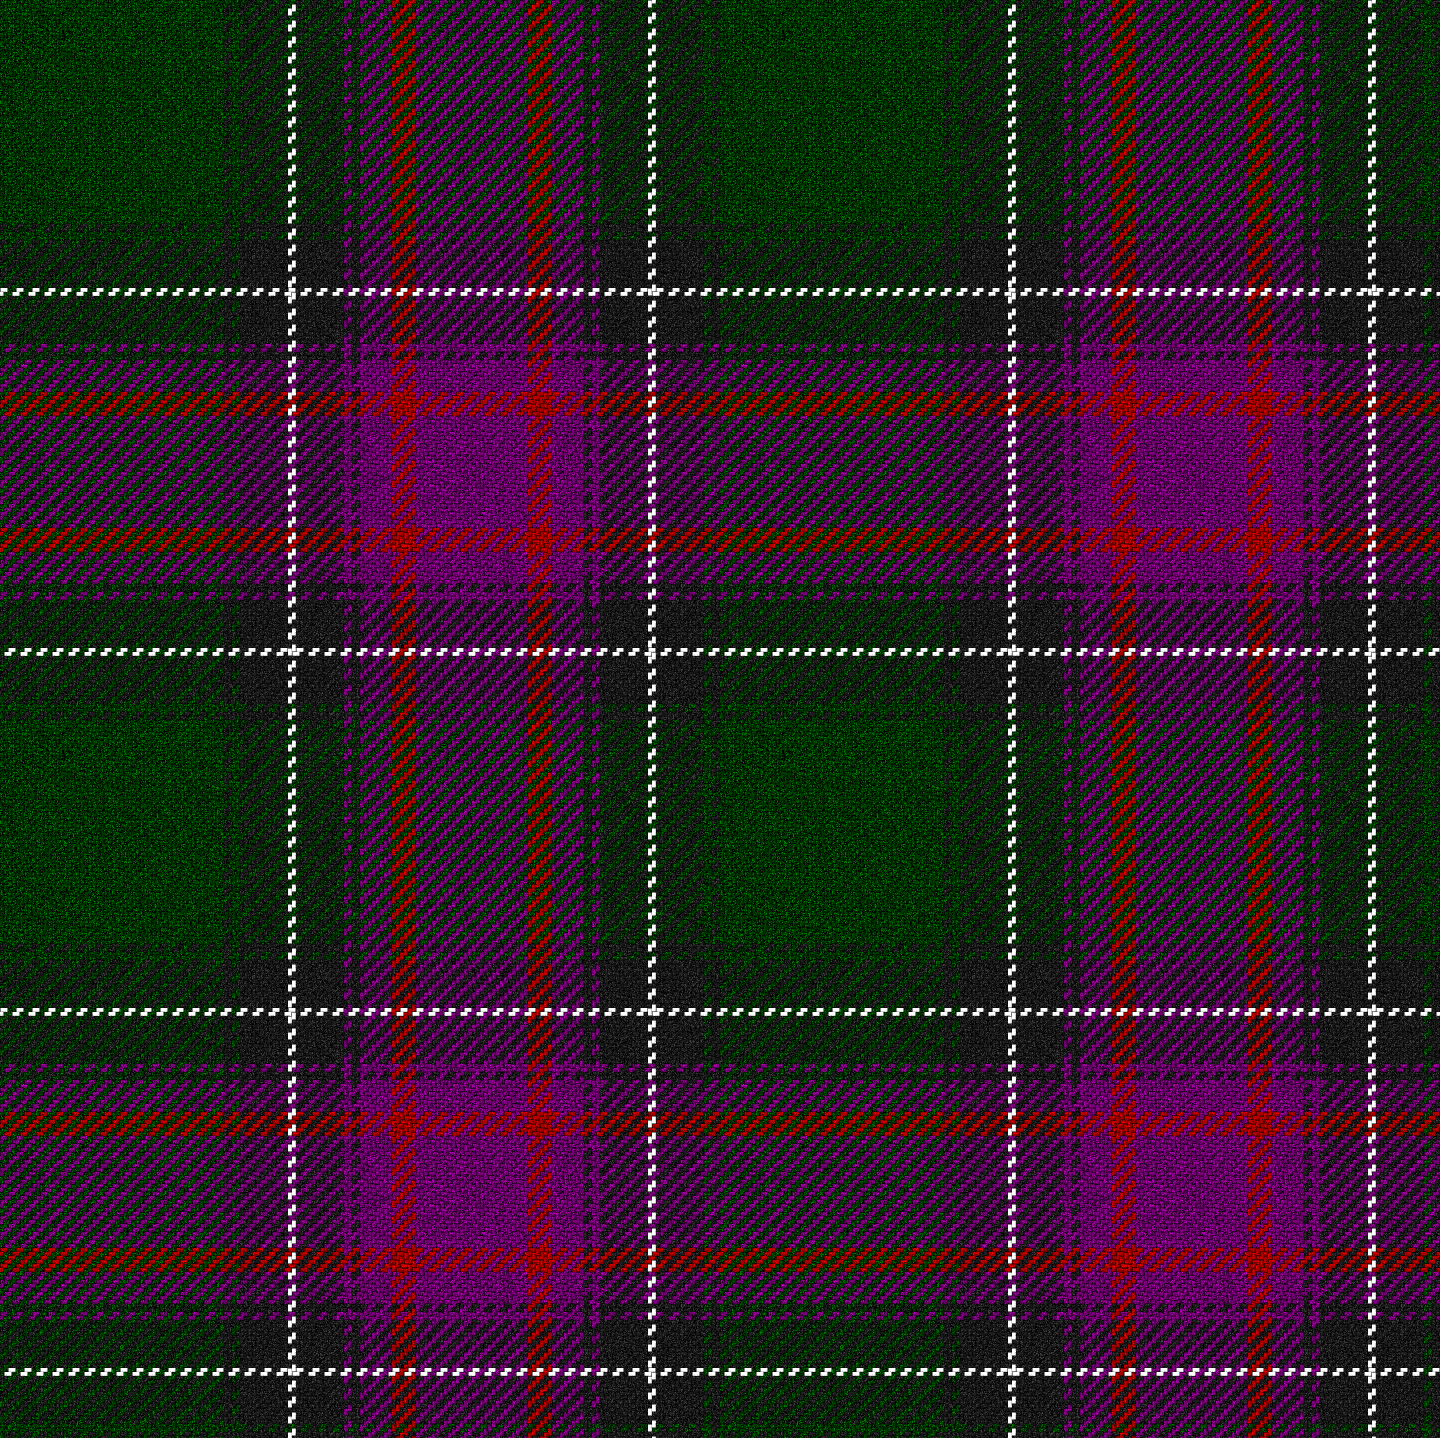 file state tartan of new hampshire png wikimedia commons free bird vector graphics free vector bird nest